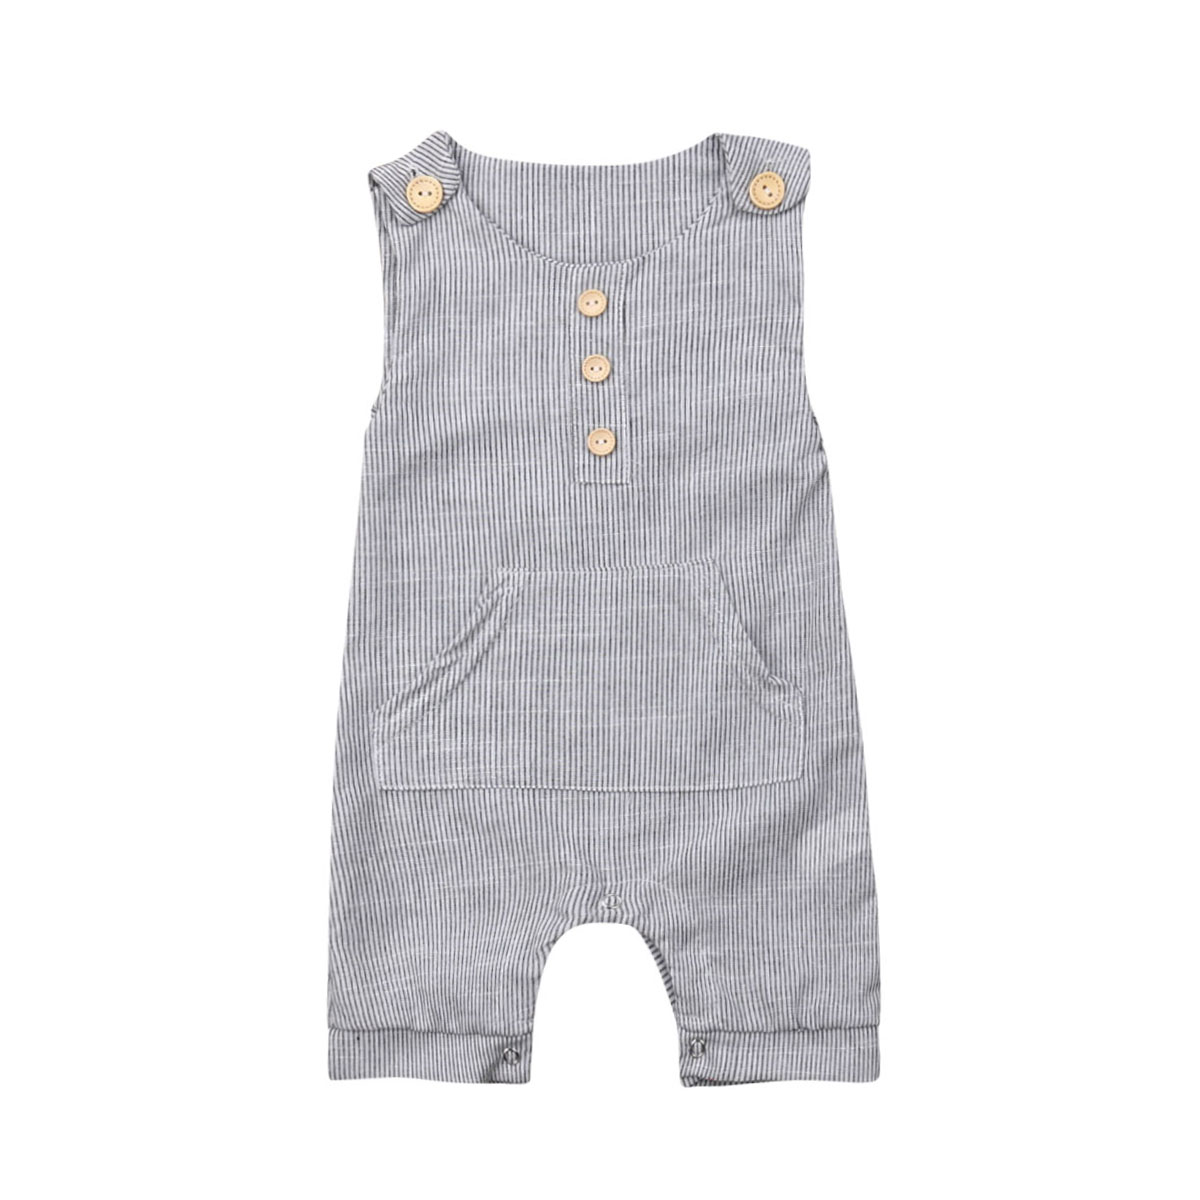 2019 Summer Newborn Toddler Baby Boy Clothes Sleeveless Linen Cotton   Romper   Jumpsuit Casual Summer Baby Boy Clothing